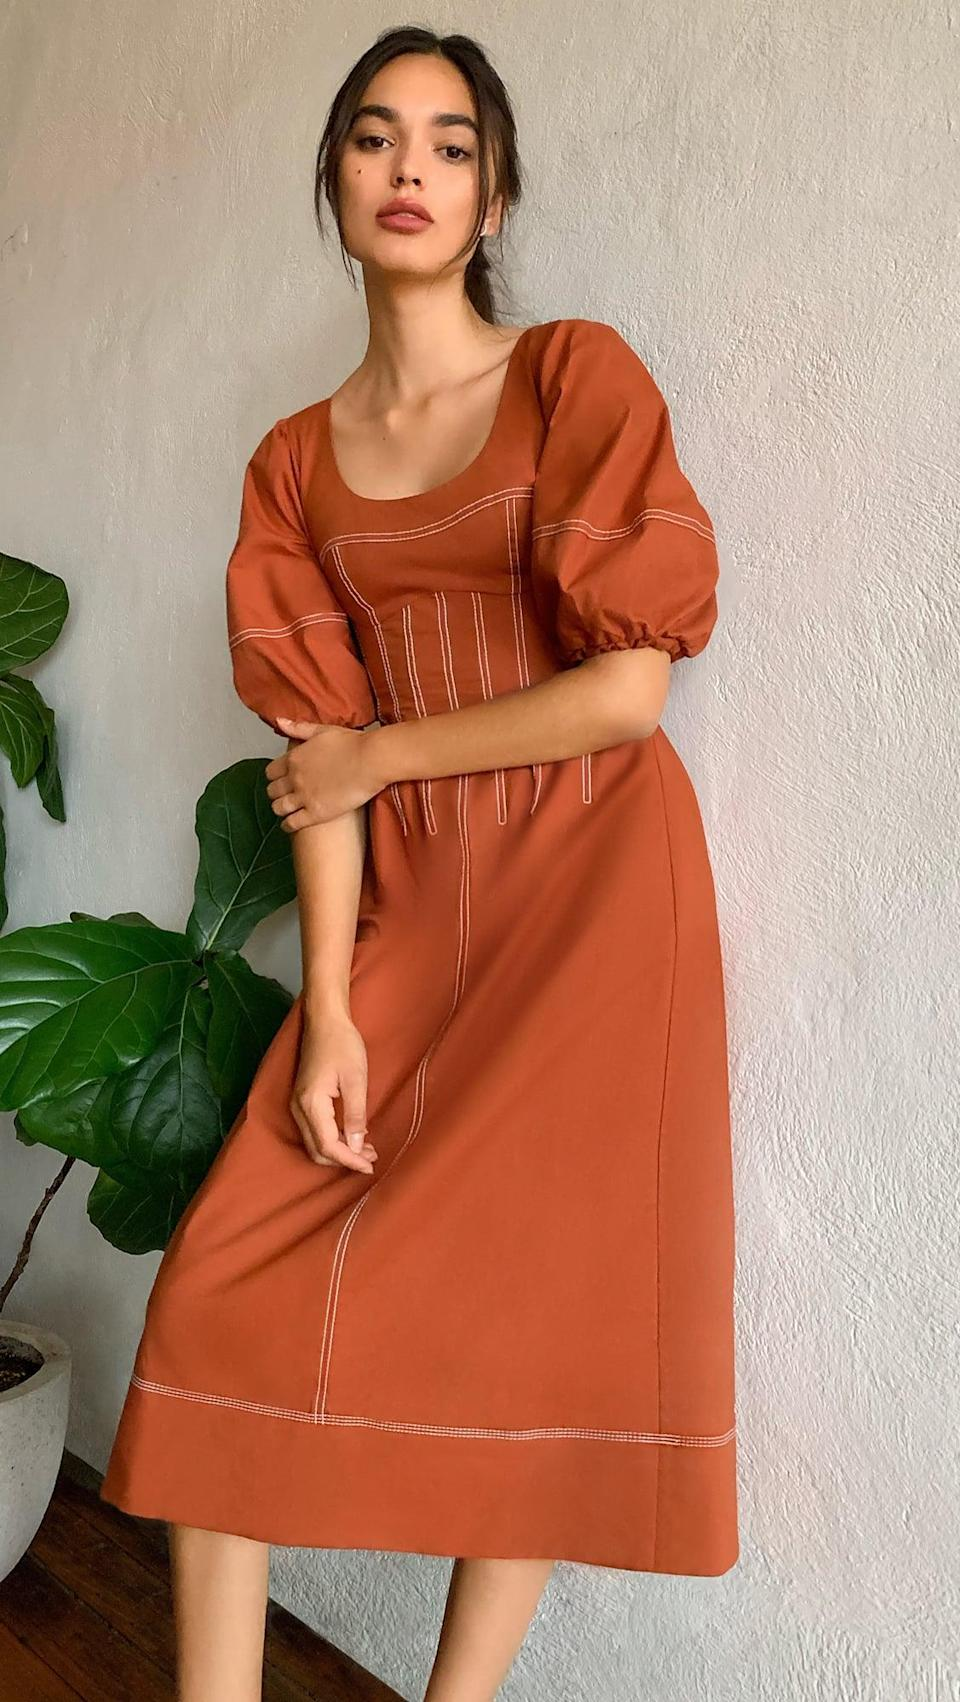 <p>Burnt orange is one of my favorite colors to wear year-round. It's eye-catching in a subtle yet powerful way. So I was super excited to discover this <span>Jonathan Simkhai Lena Puff Sleeve Midi Dress</span> ($495).</p>